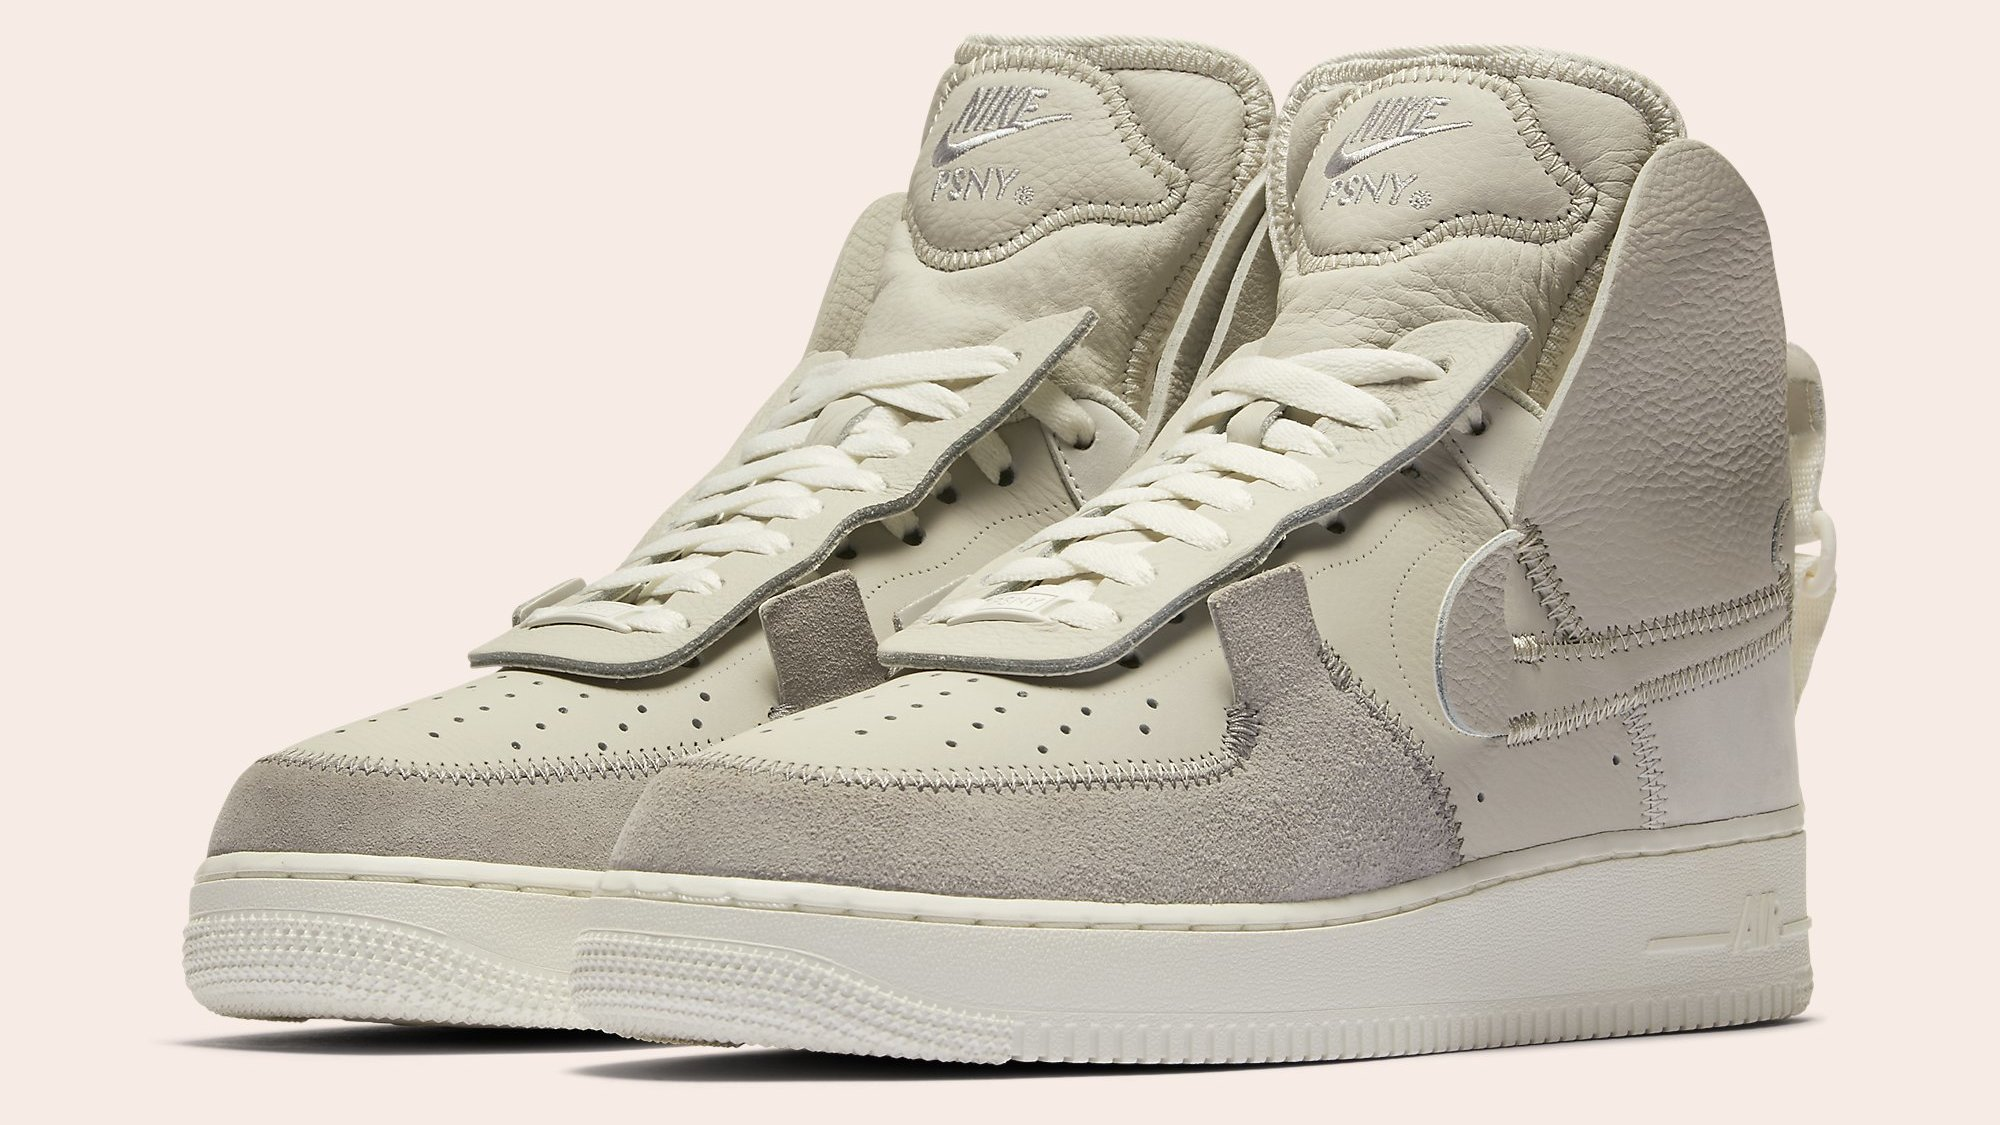 ded5a7a1af90a8 PSNY x Nike Air Force 1 High Black White Wolf Grey Release Date ...